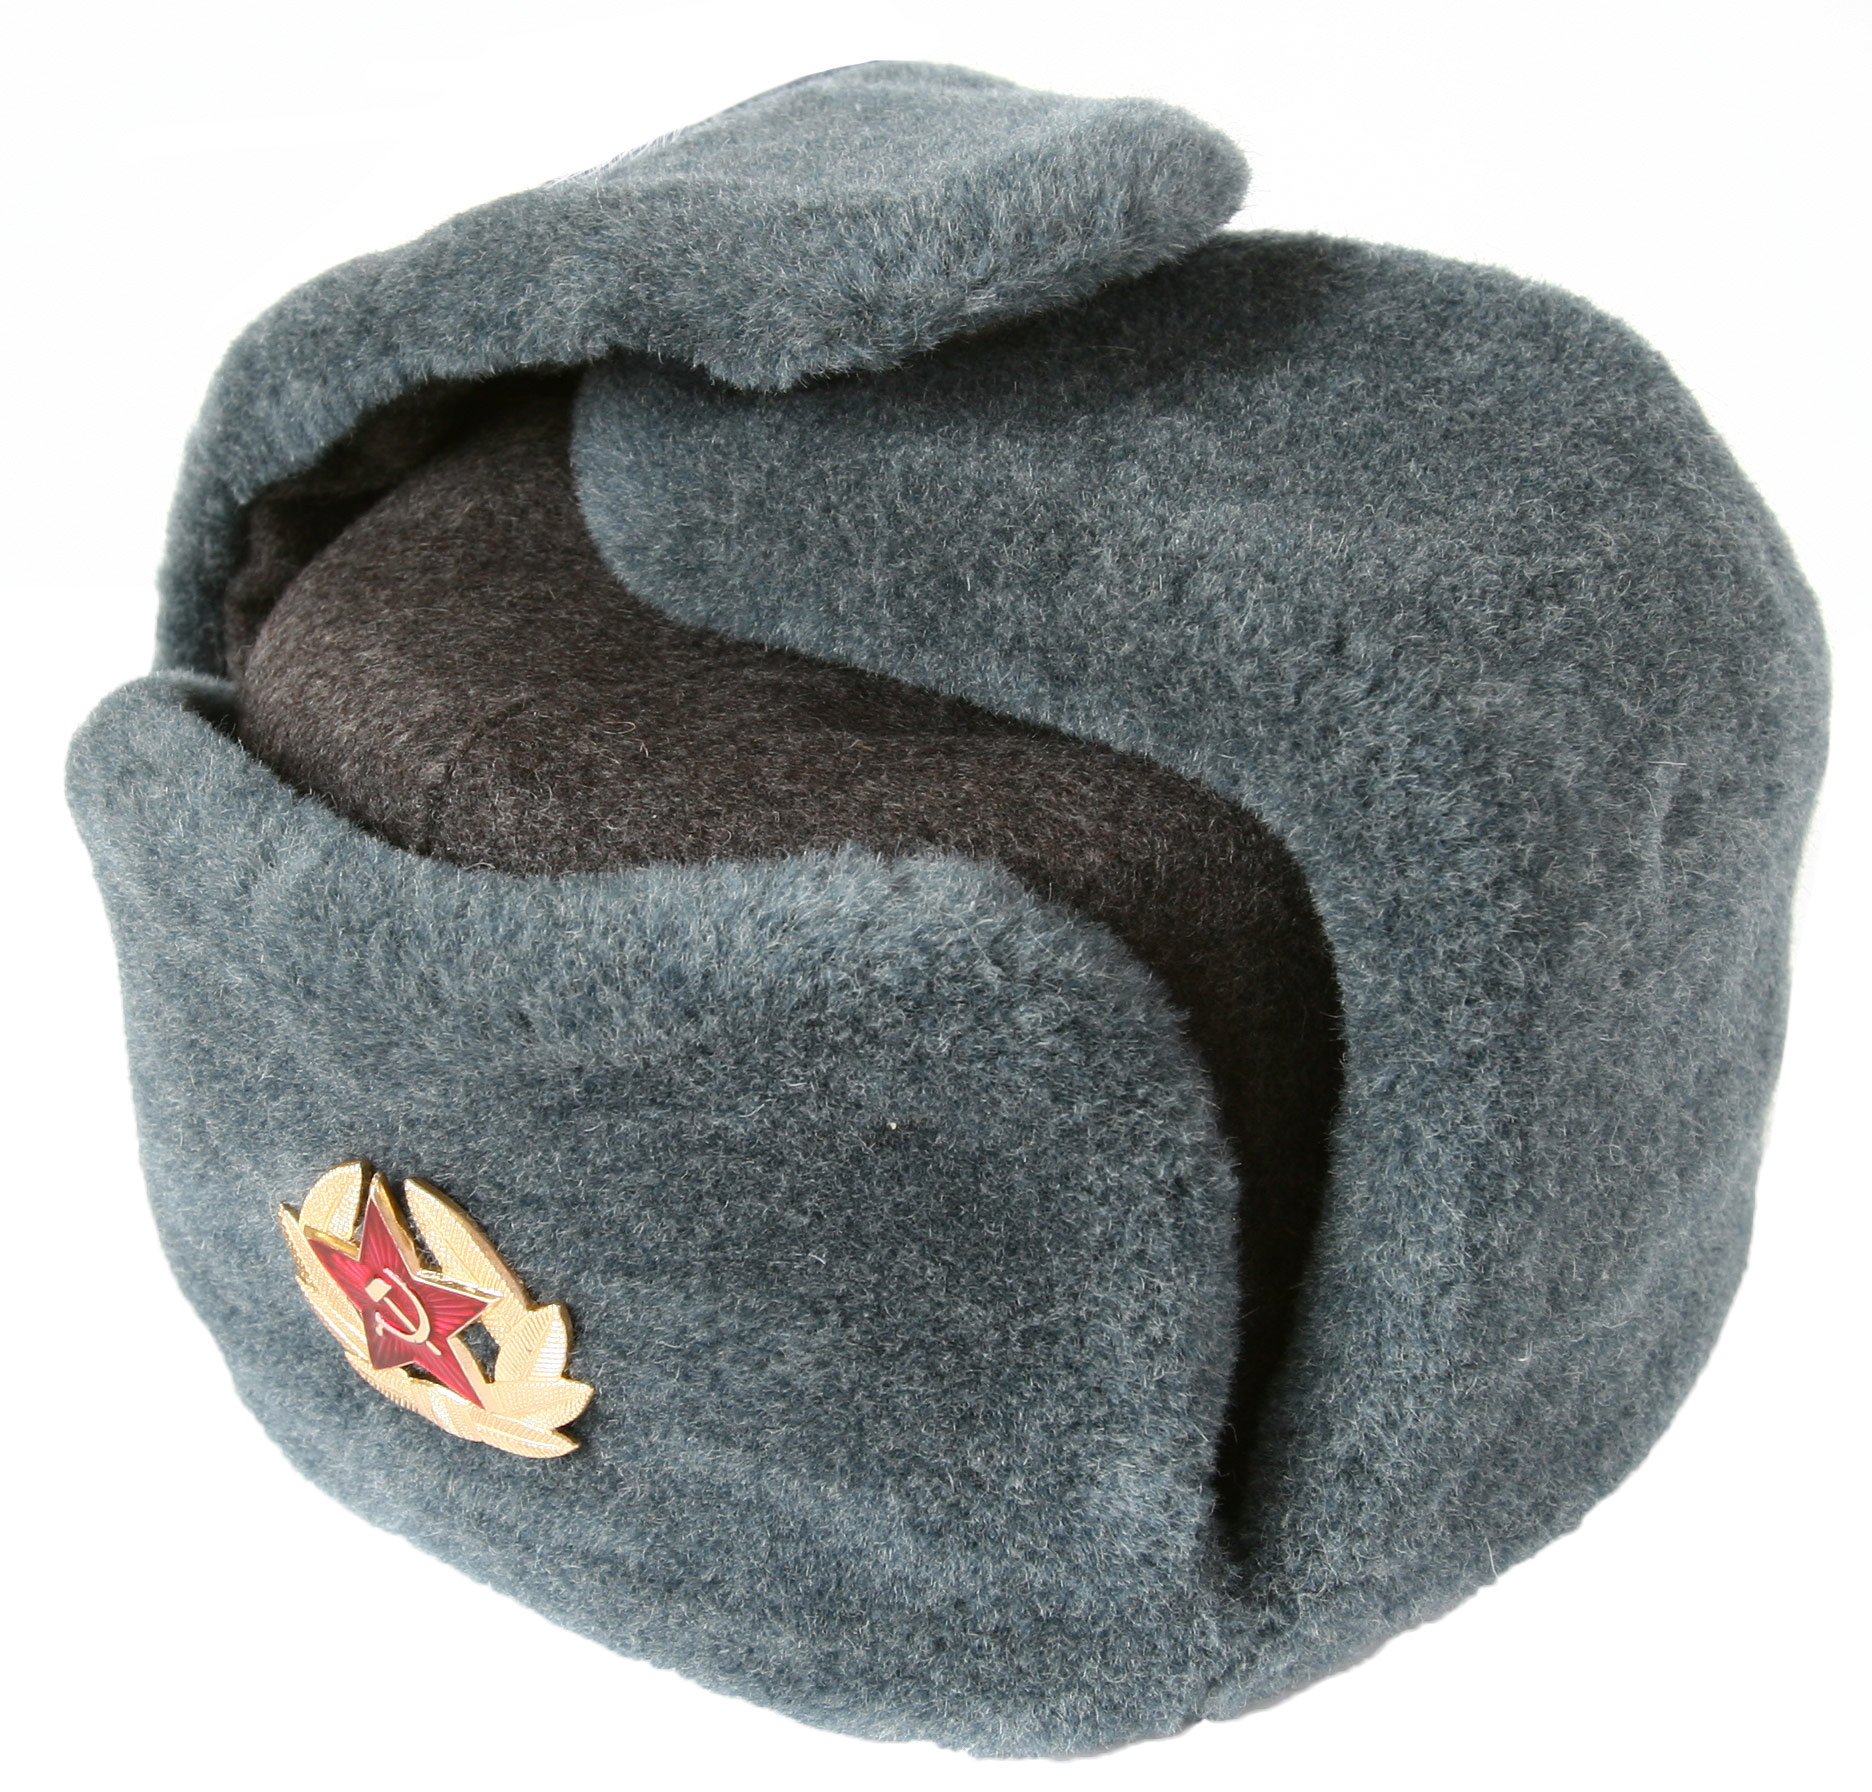 For correct fit order 1 size larger than the recommended size. The ... Ushanka Soldier